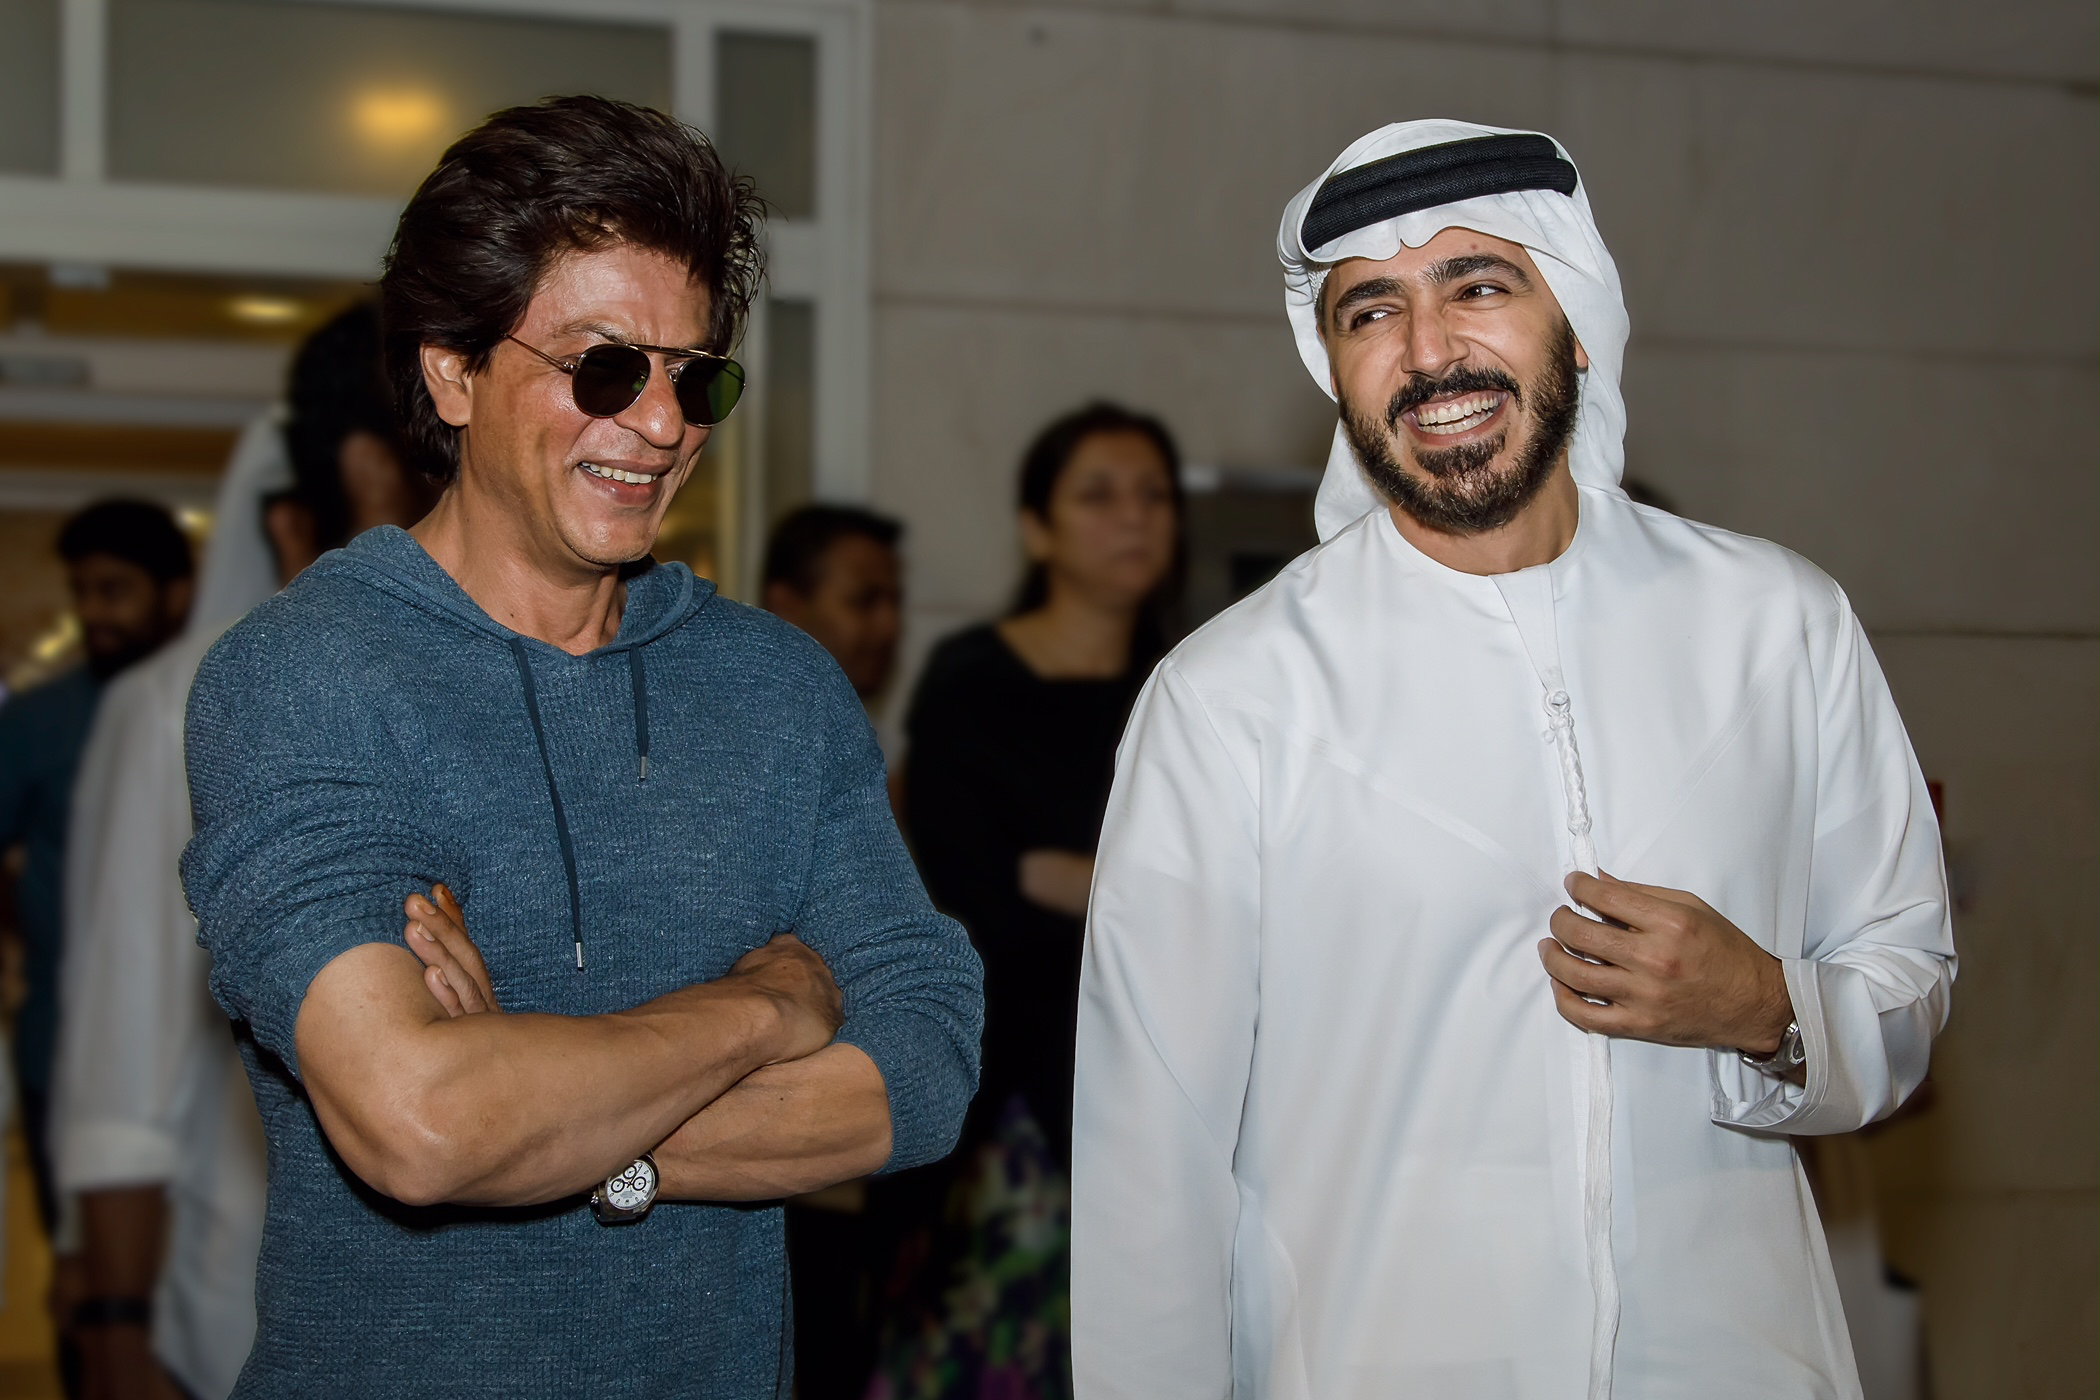 Shah Rukh Khan with Dubai Tourism CEO Issam Kazim2